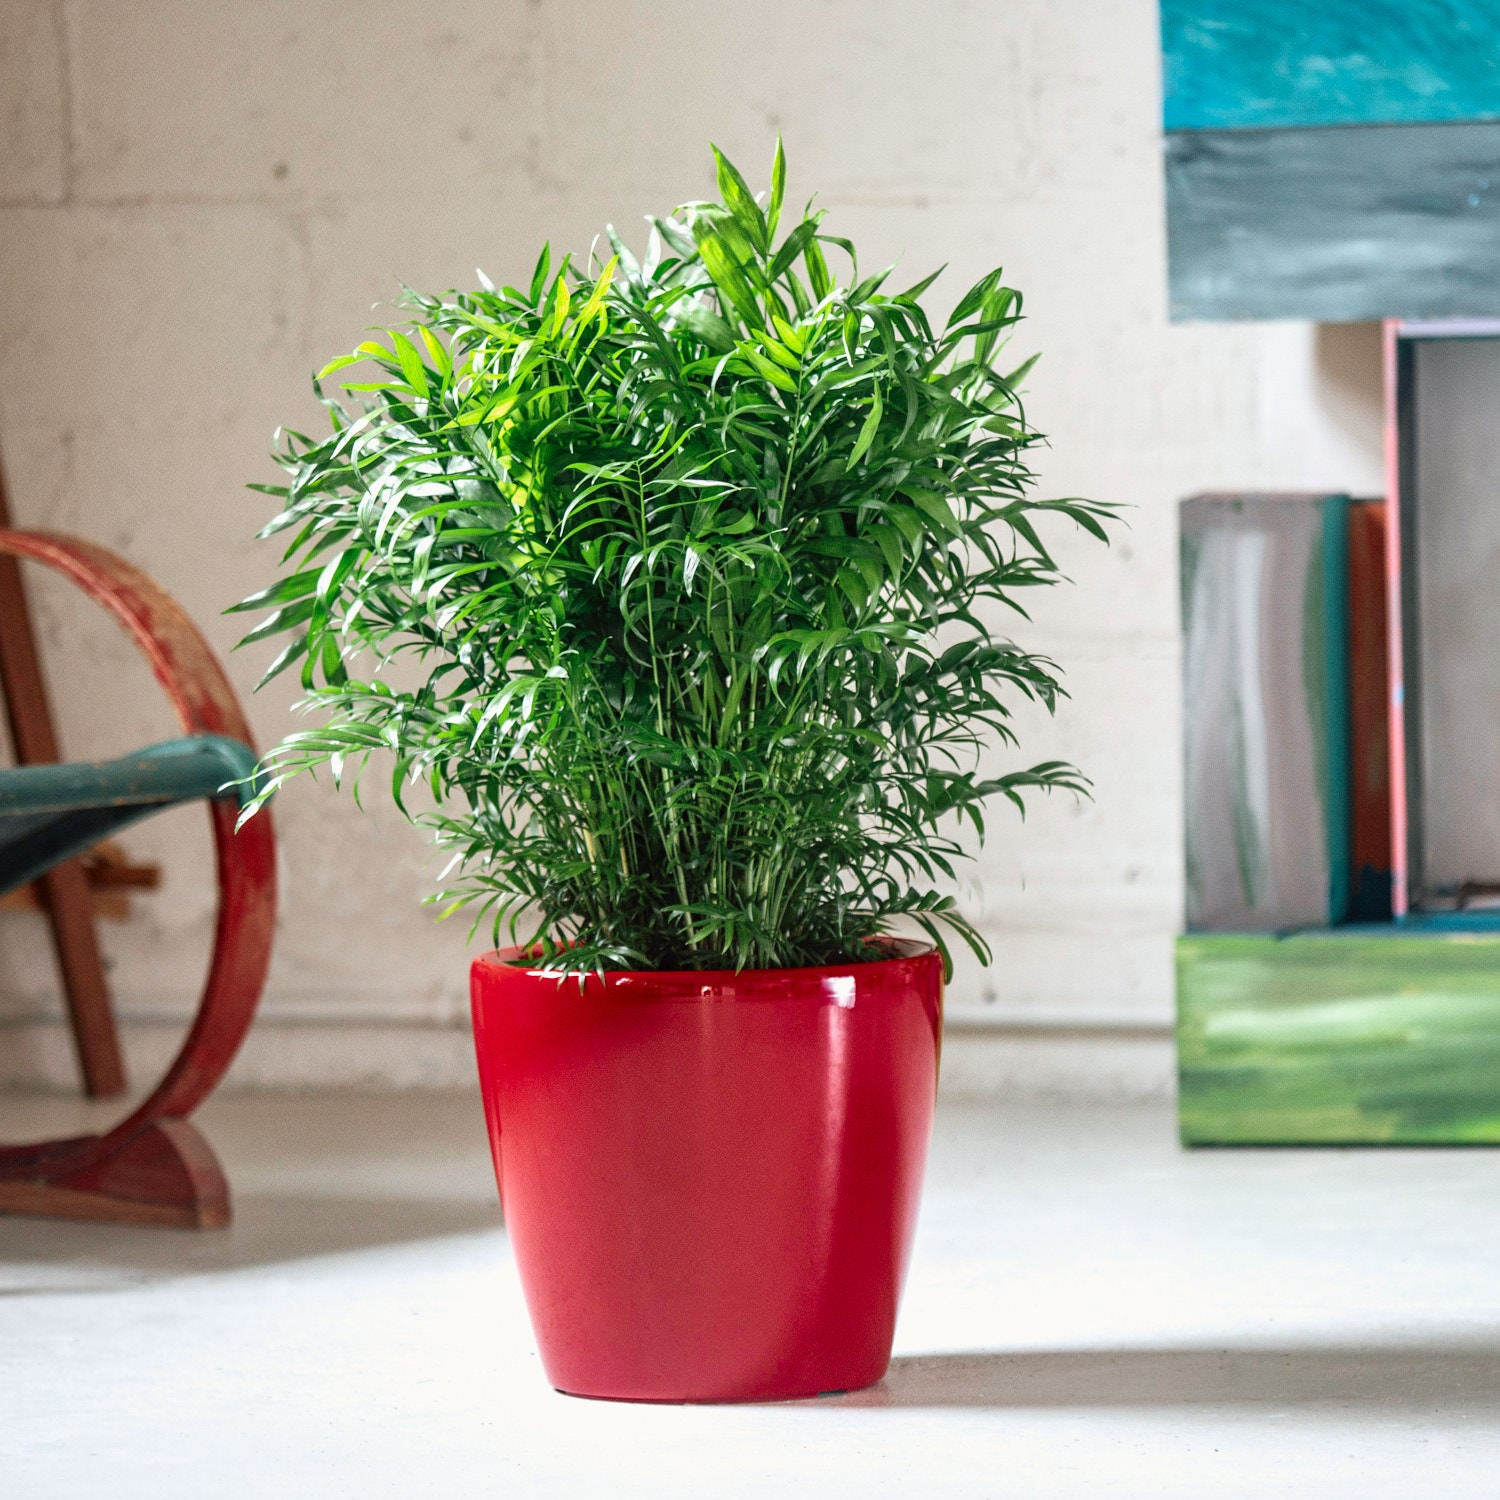 Bella Palm | Lechuza Classico Red Planter | My City Plants